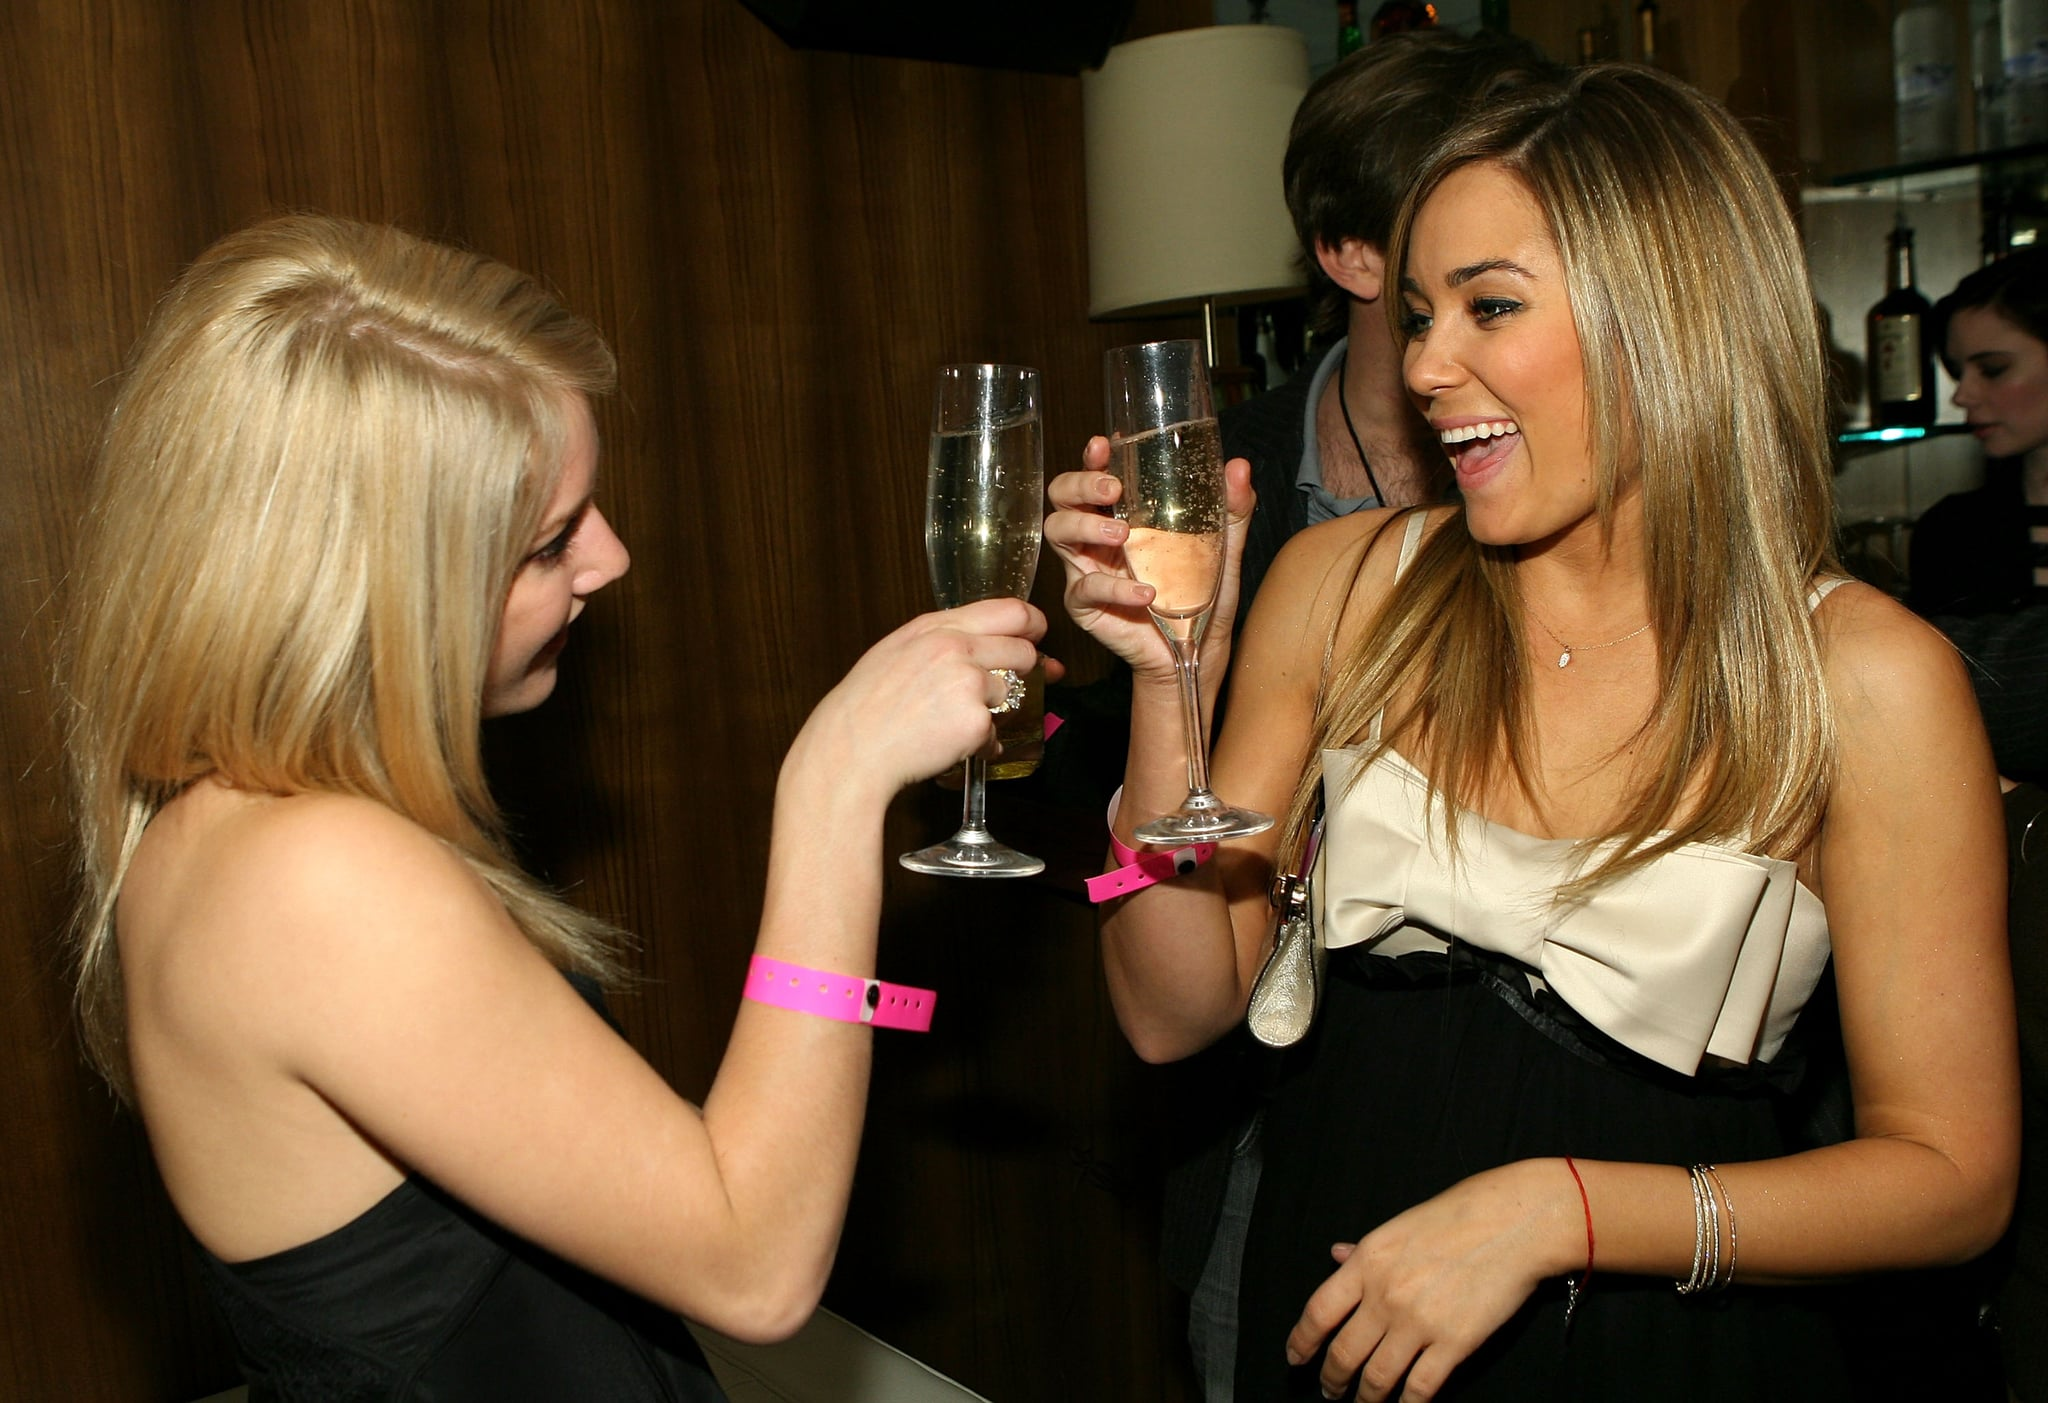 Then-BFFs Lauren Conrad and Heidi Montag clinked glasses while celebrating Lauren's 21st birthday in LA back in February 2007.